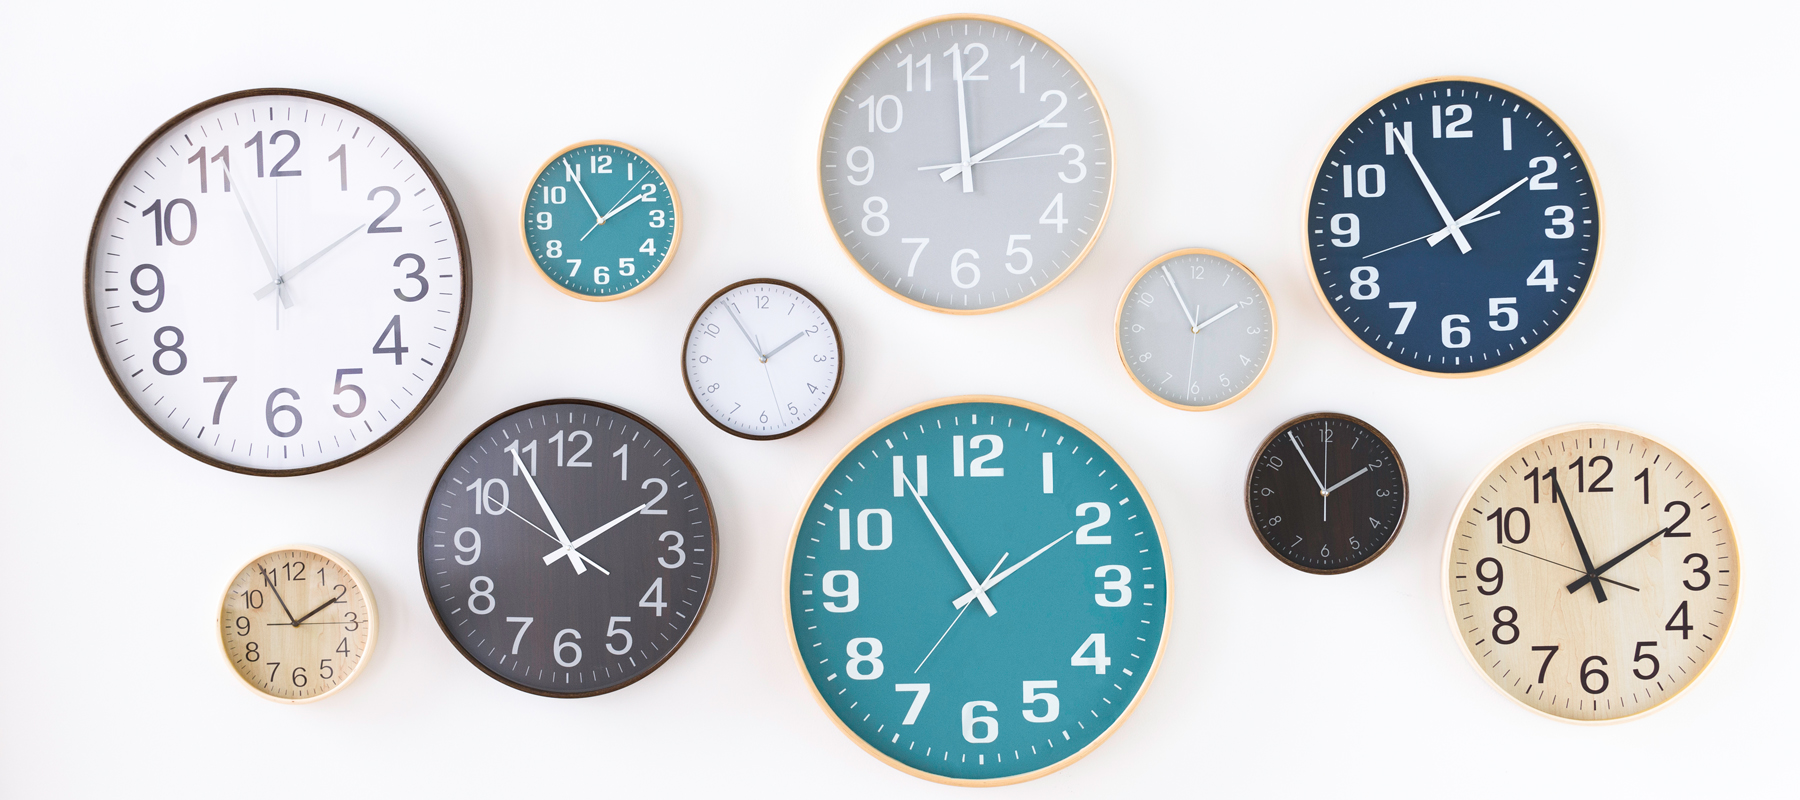 160309_Clocks_0641-Edit_WEB